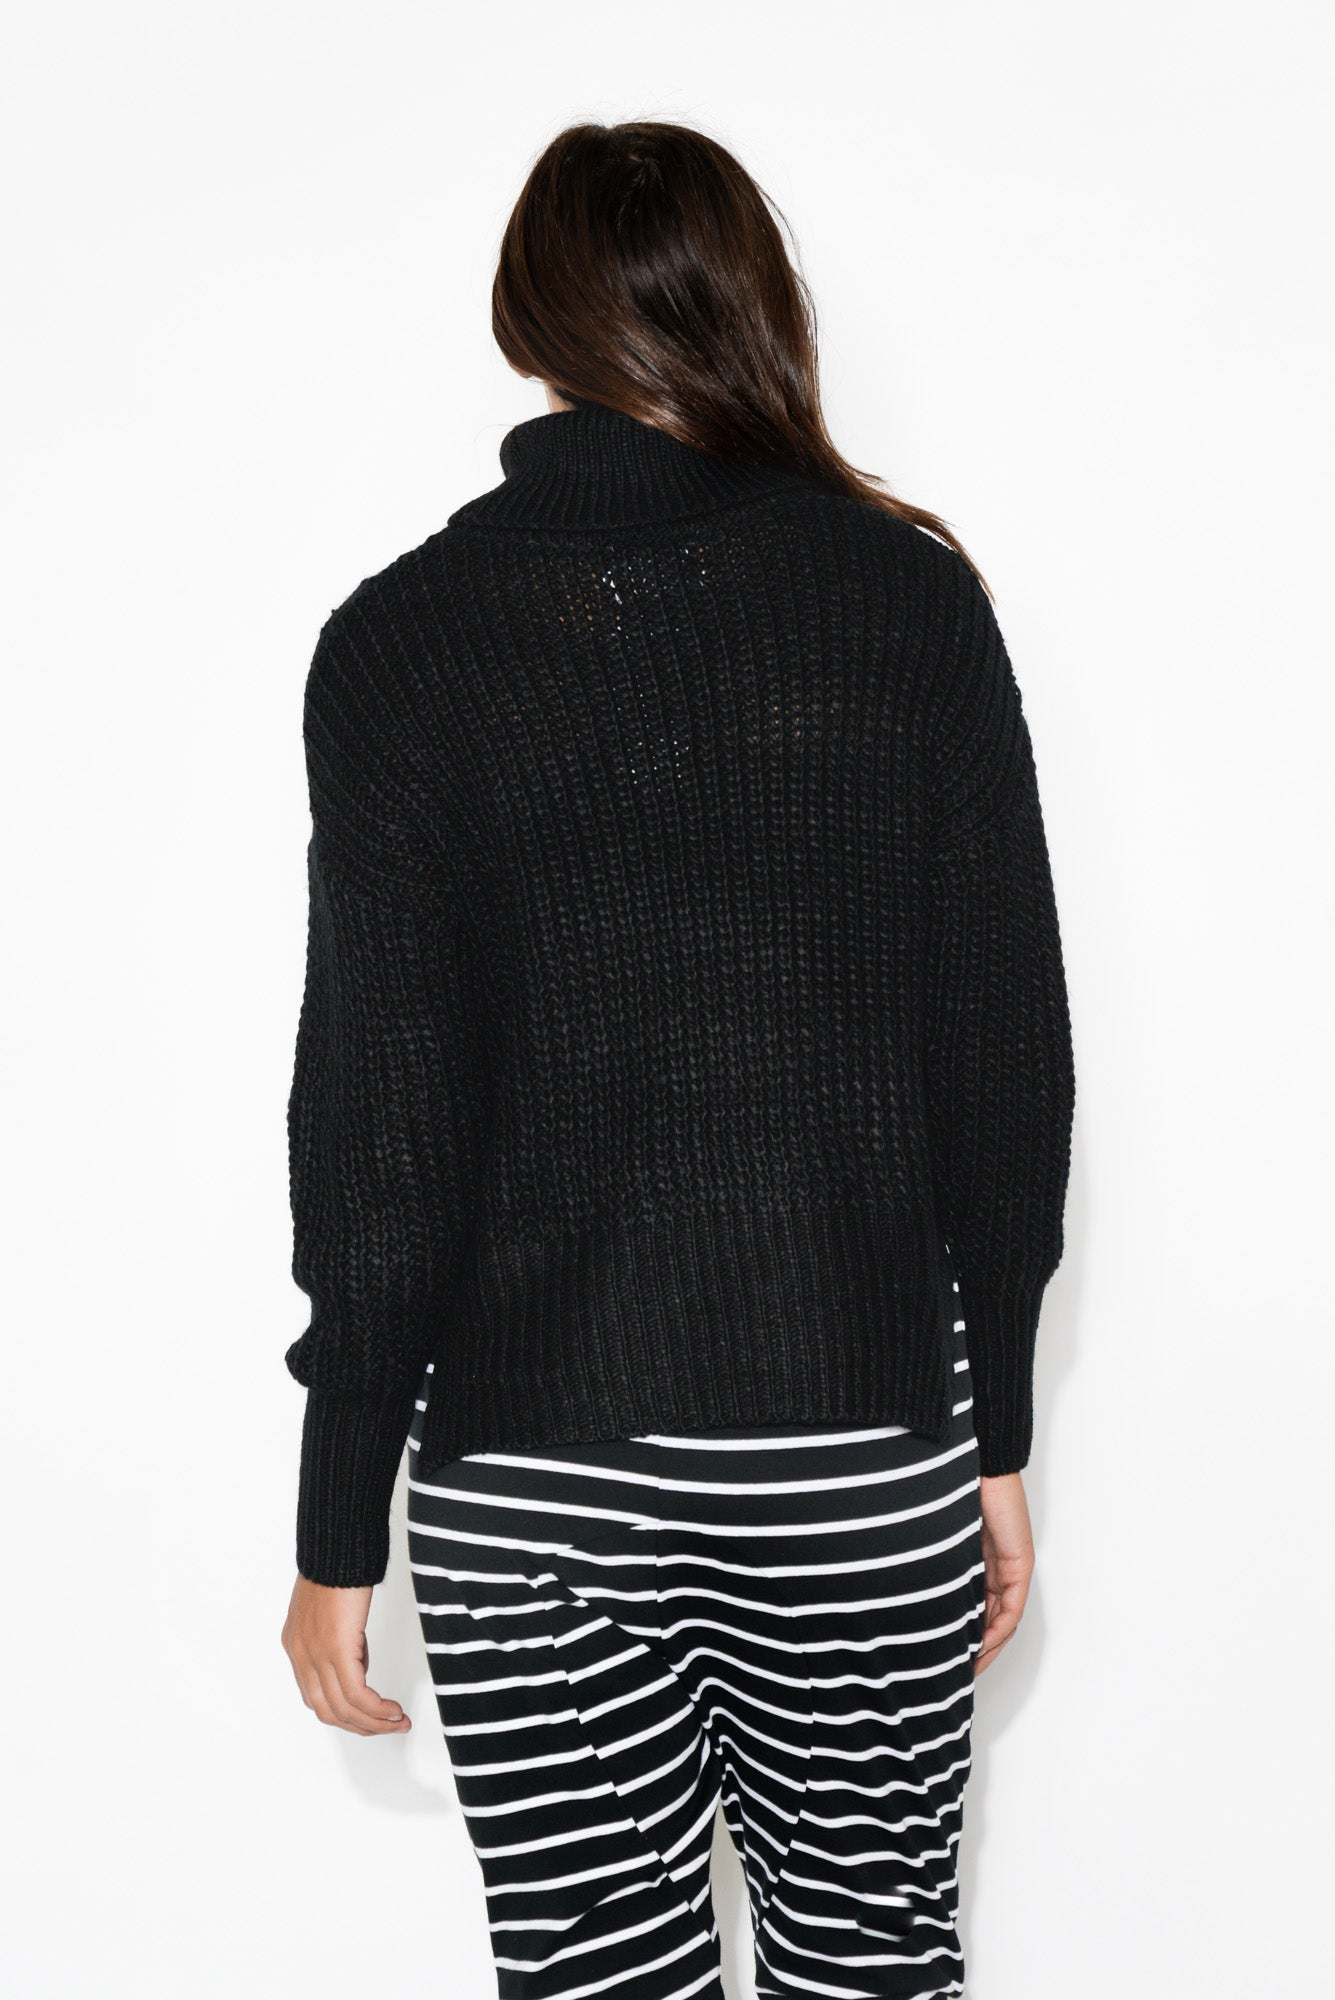 Samara Black Turtleneck Jumper